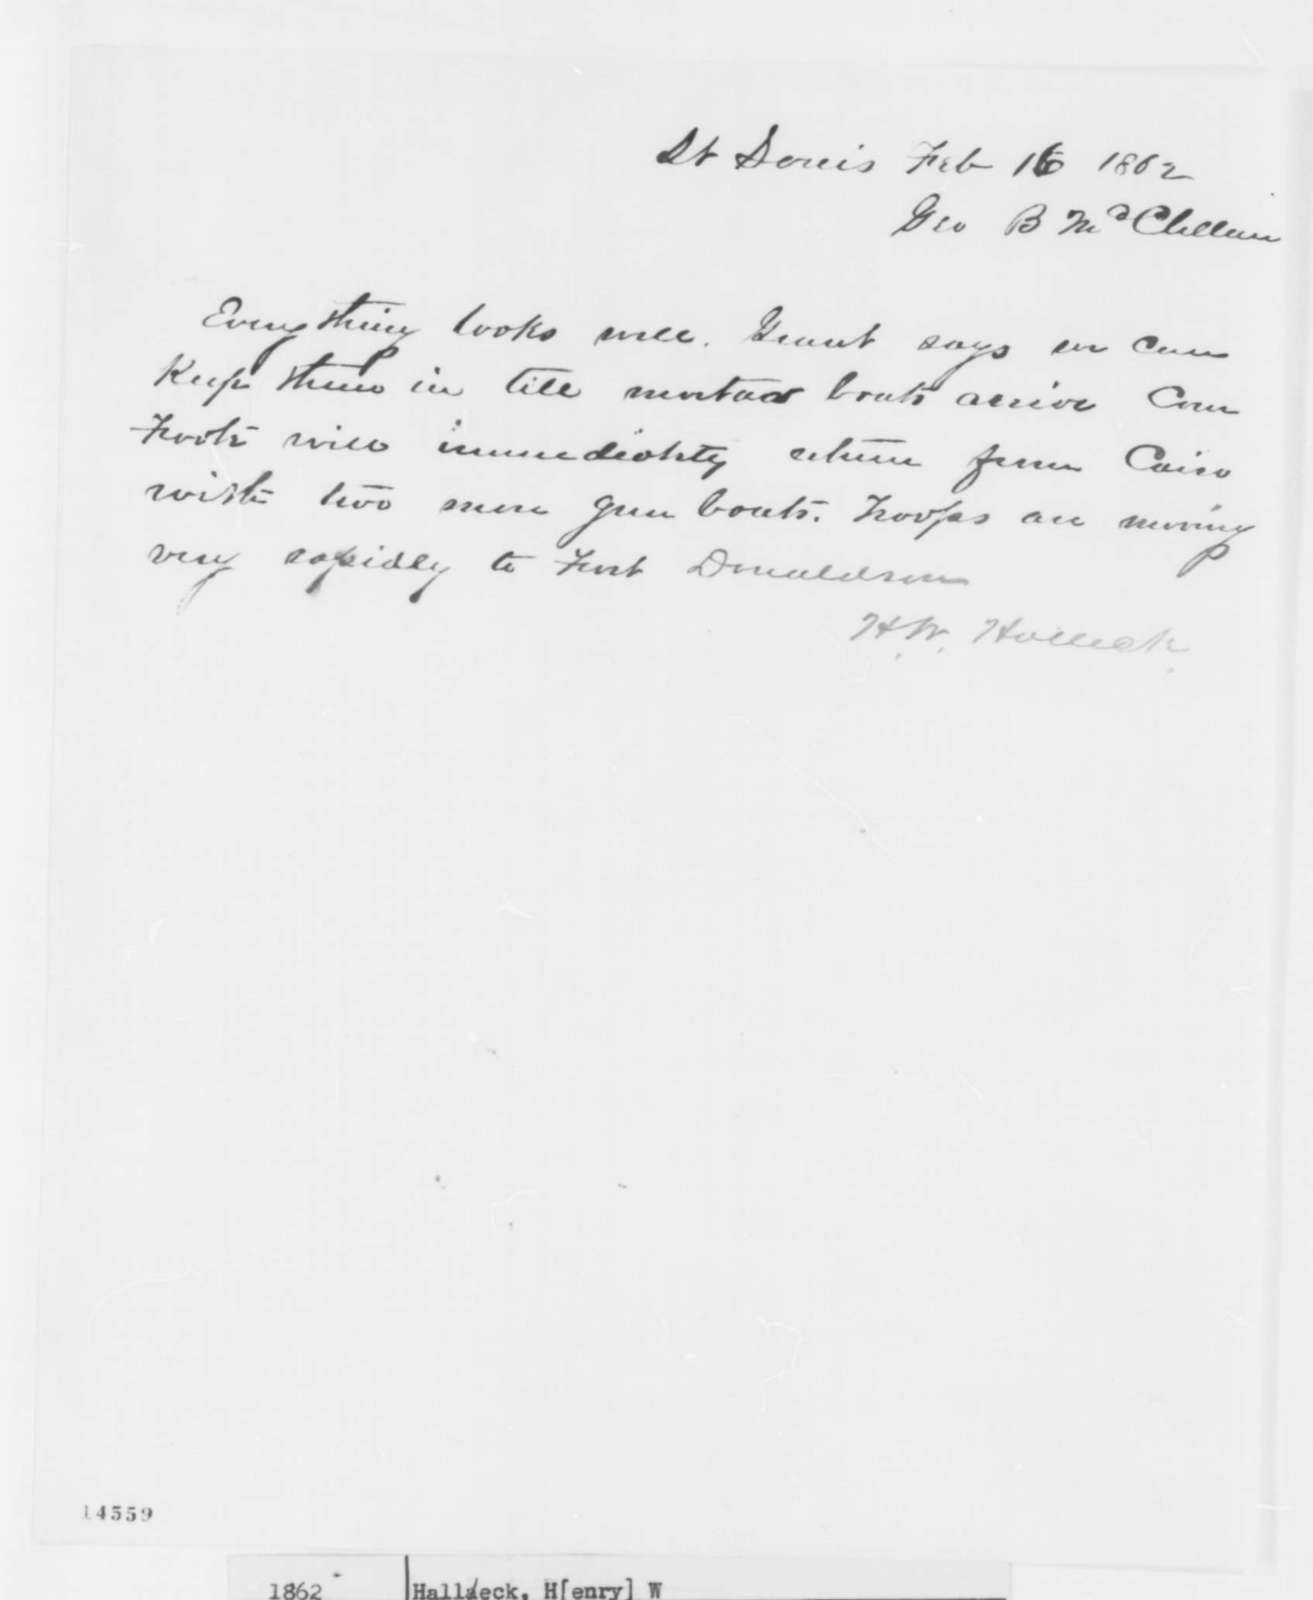 Henry W. Halleck to George B. McClellan, Sunday, February 16, 1862  (Telegram regarding military affairs)